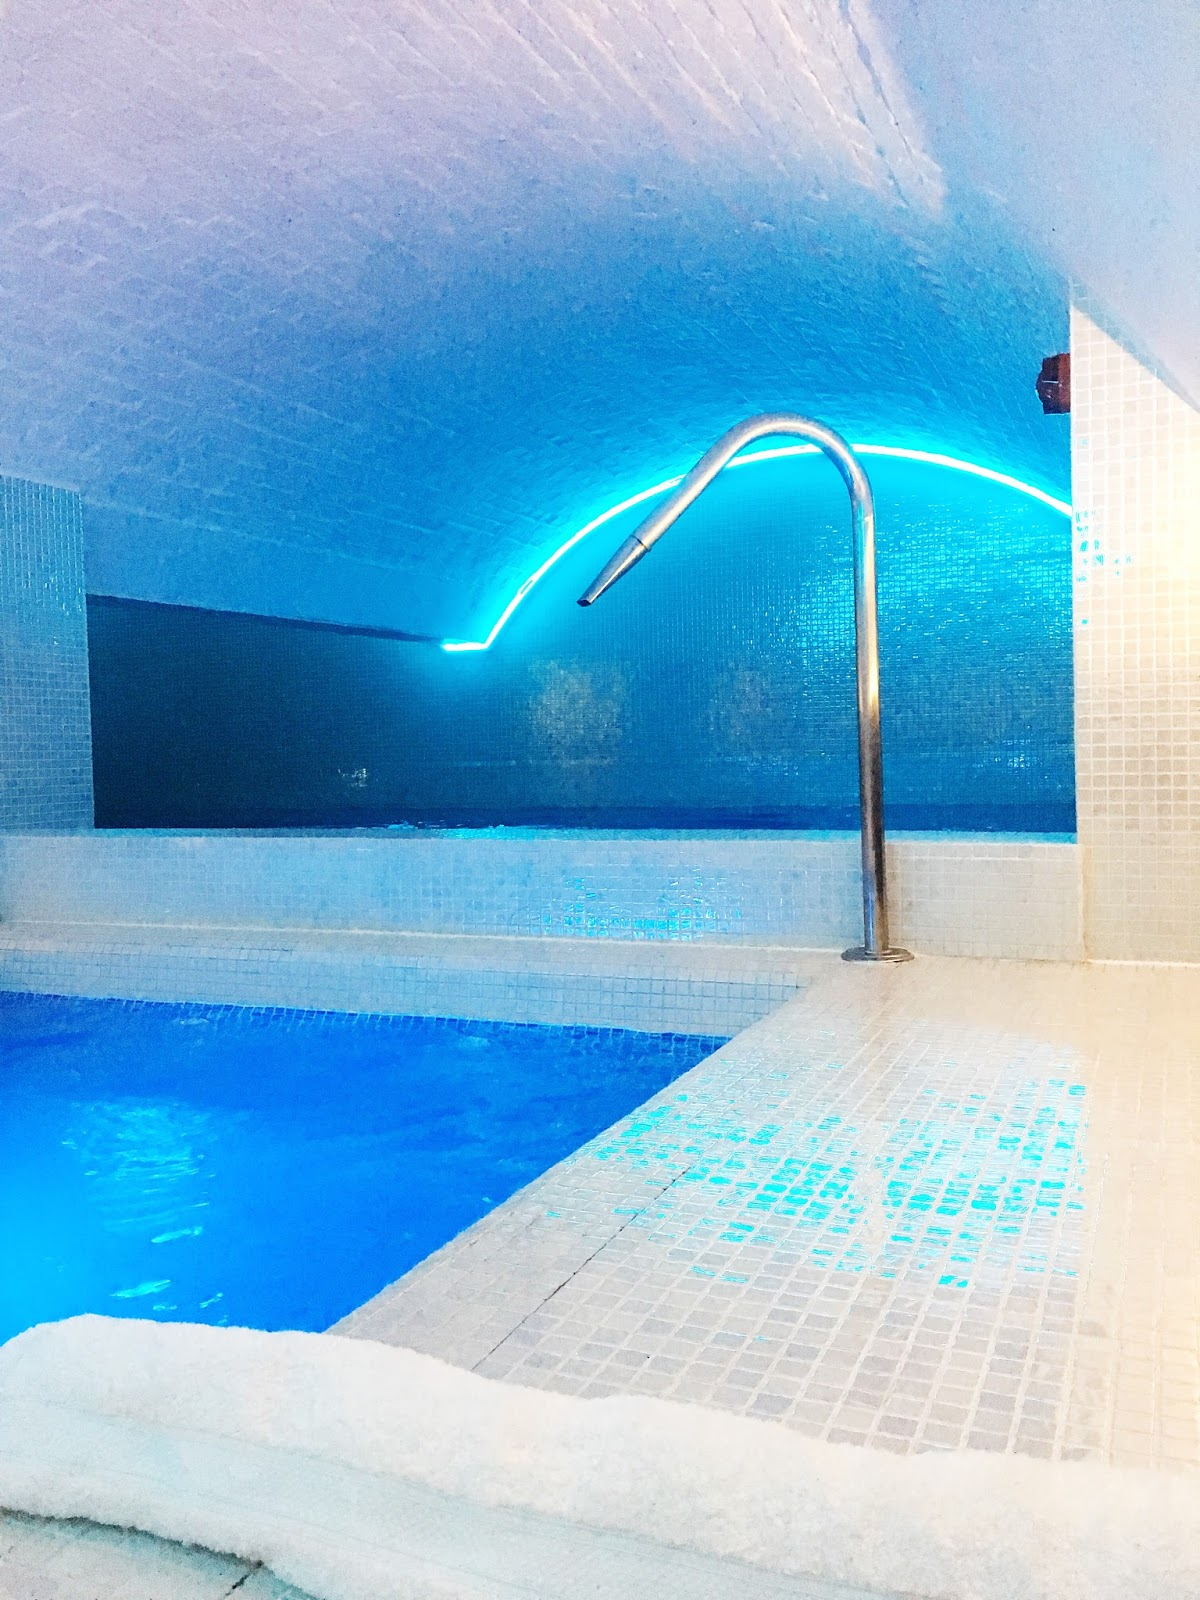 Lifestyle | Taking the Stress out of Christmas with Bristol Harbour Spa